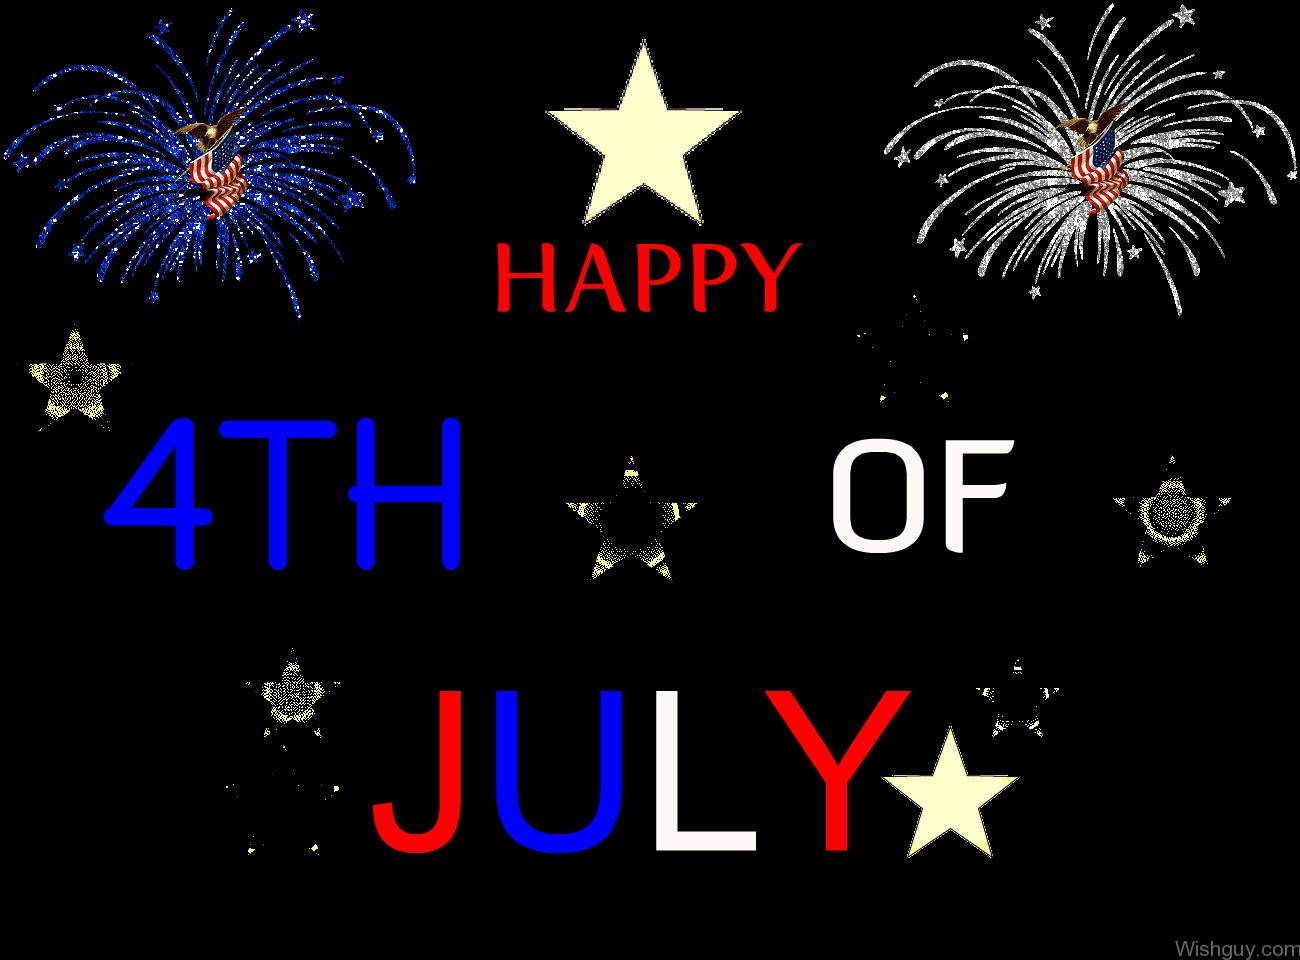 Happy 4th of july greetings image m4hsunfo